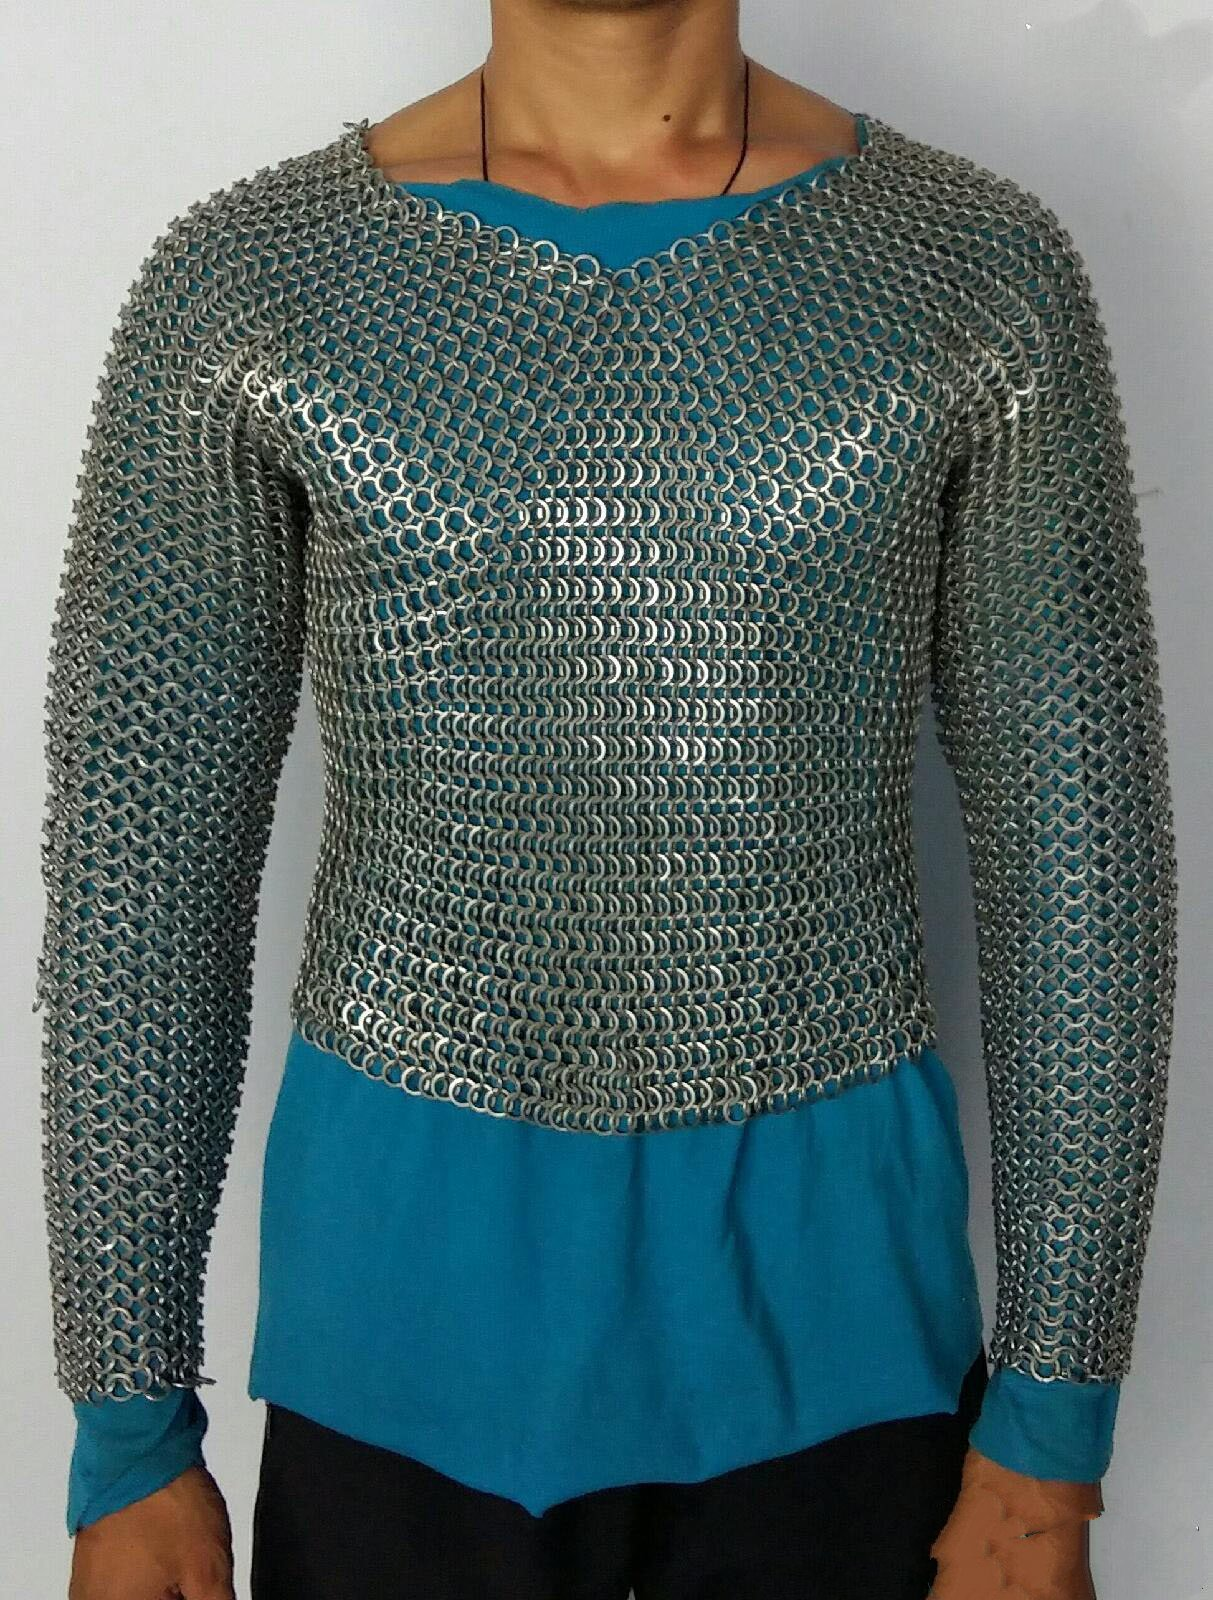 Chain mail / Mail / medieval Crusader / reality can wear a helmet